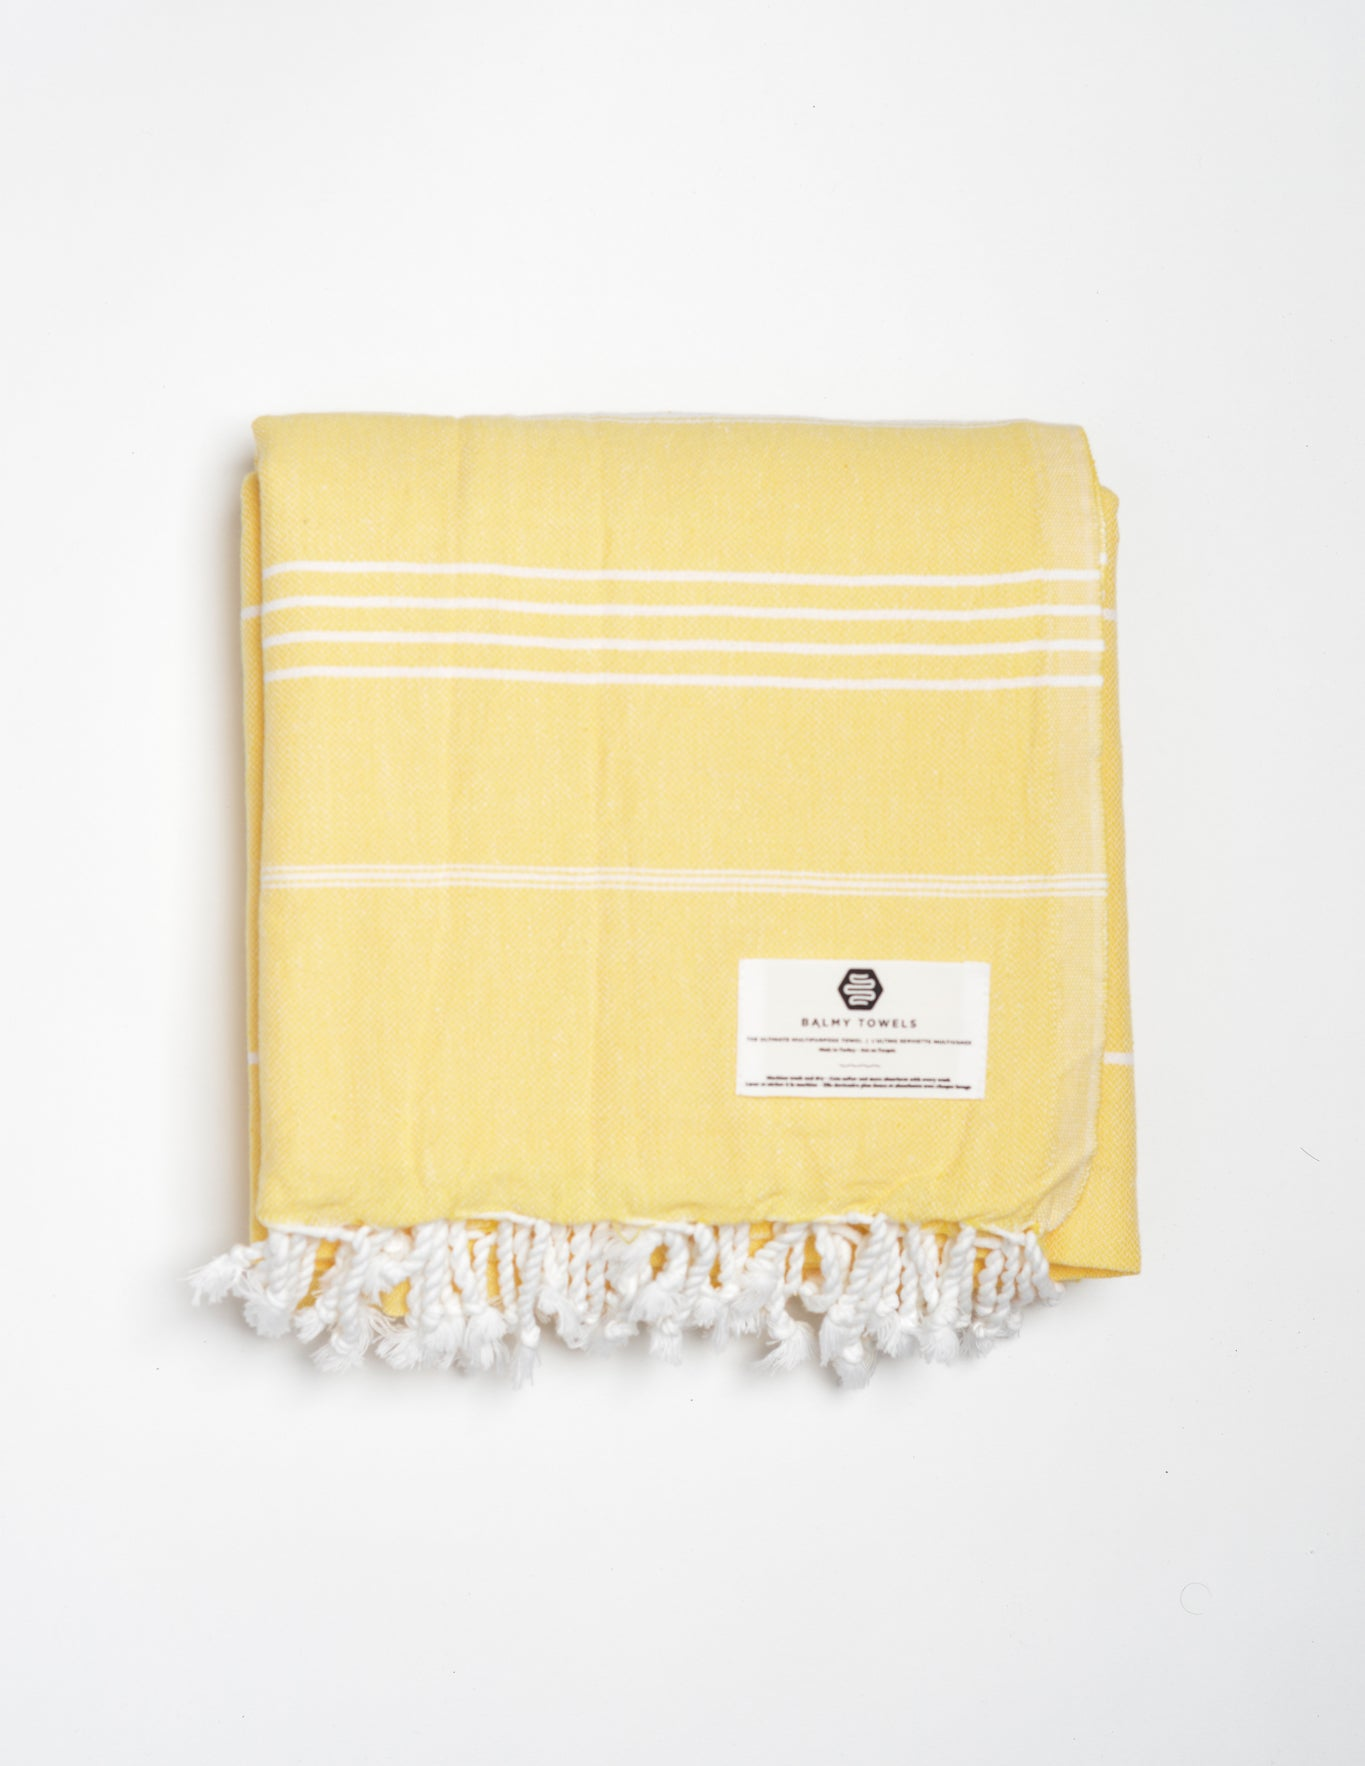 Oversized yellow cotton beach and bath Turkish towel with different sizes of thin white stripes